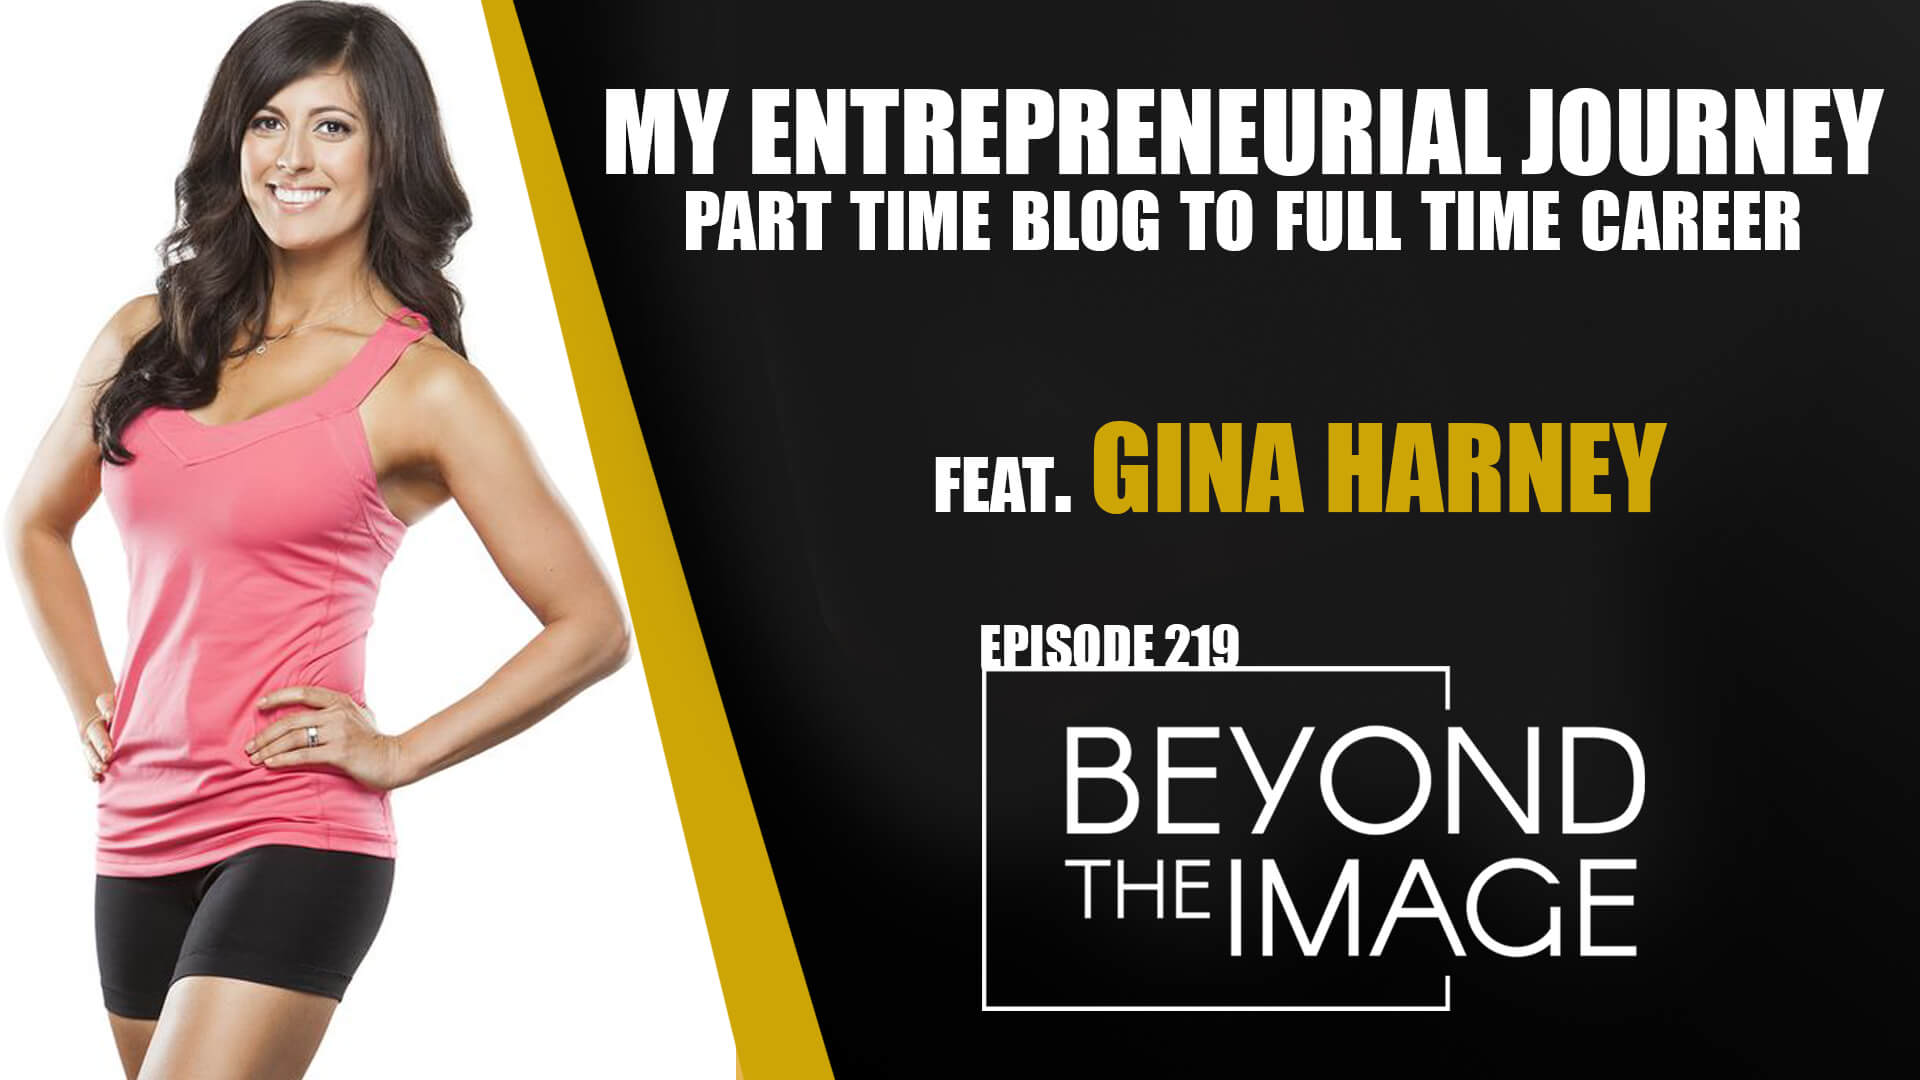 BTI #219: My Entrepreneurial Journey with Gina Harney